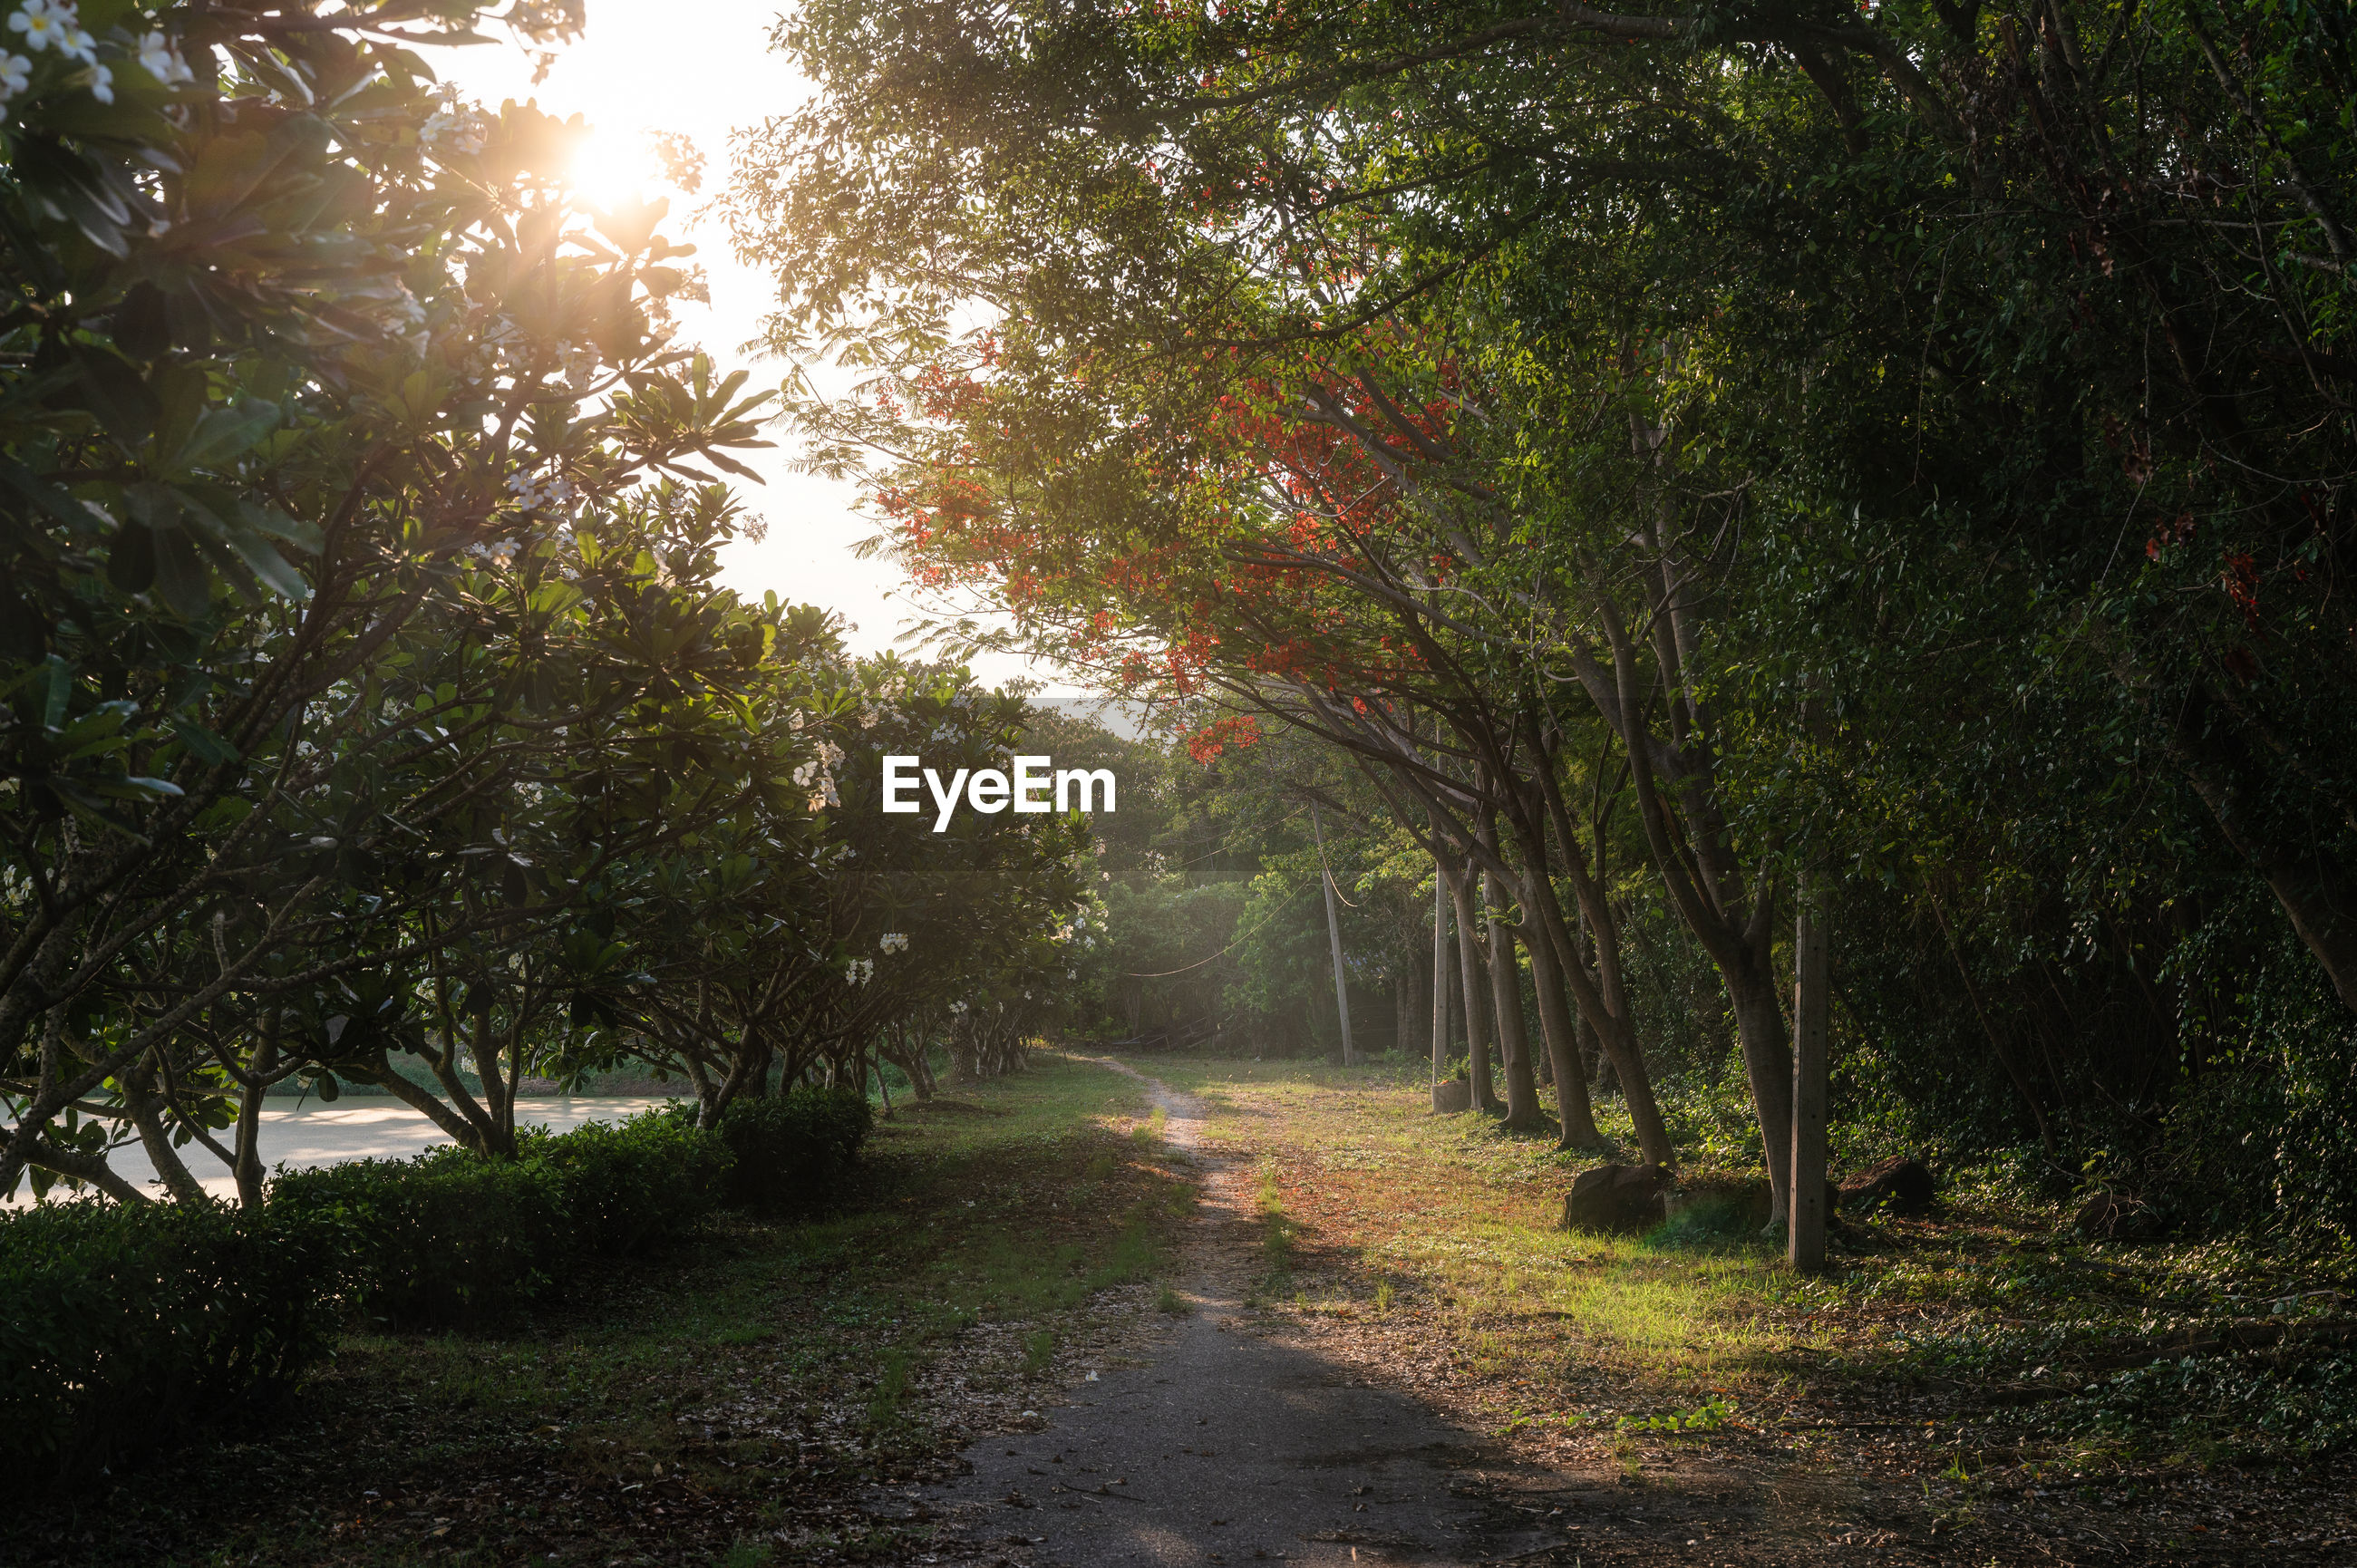 FOOTPATH AMIDST TREES IN SUNLIGHT